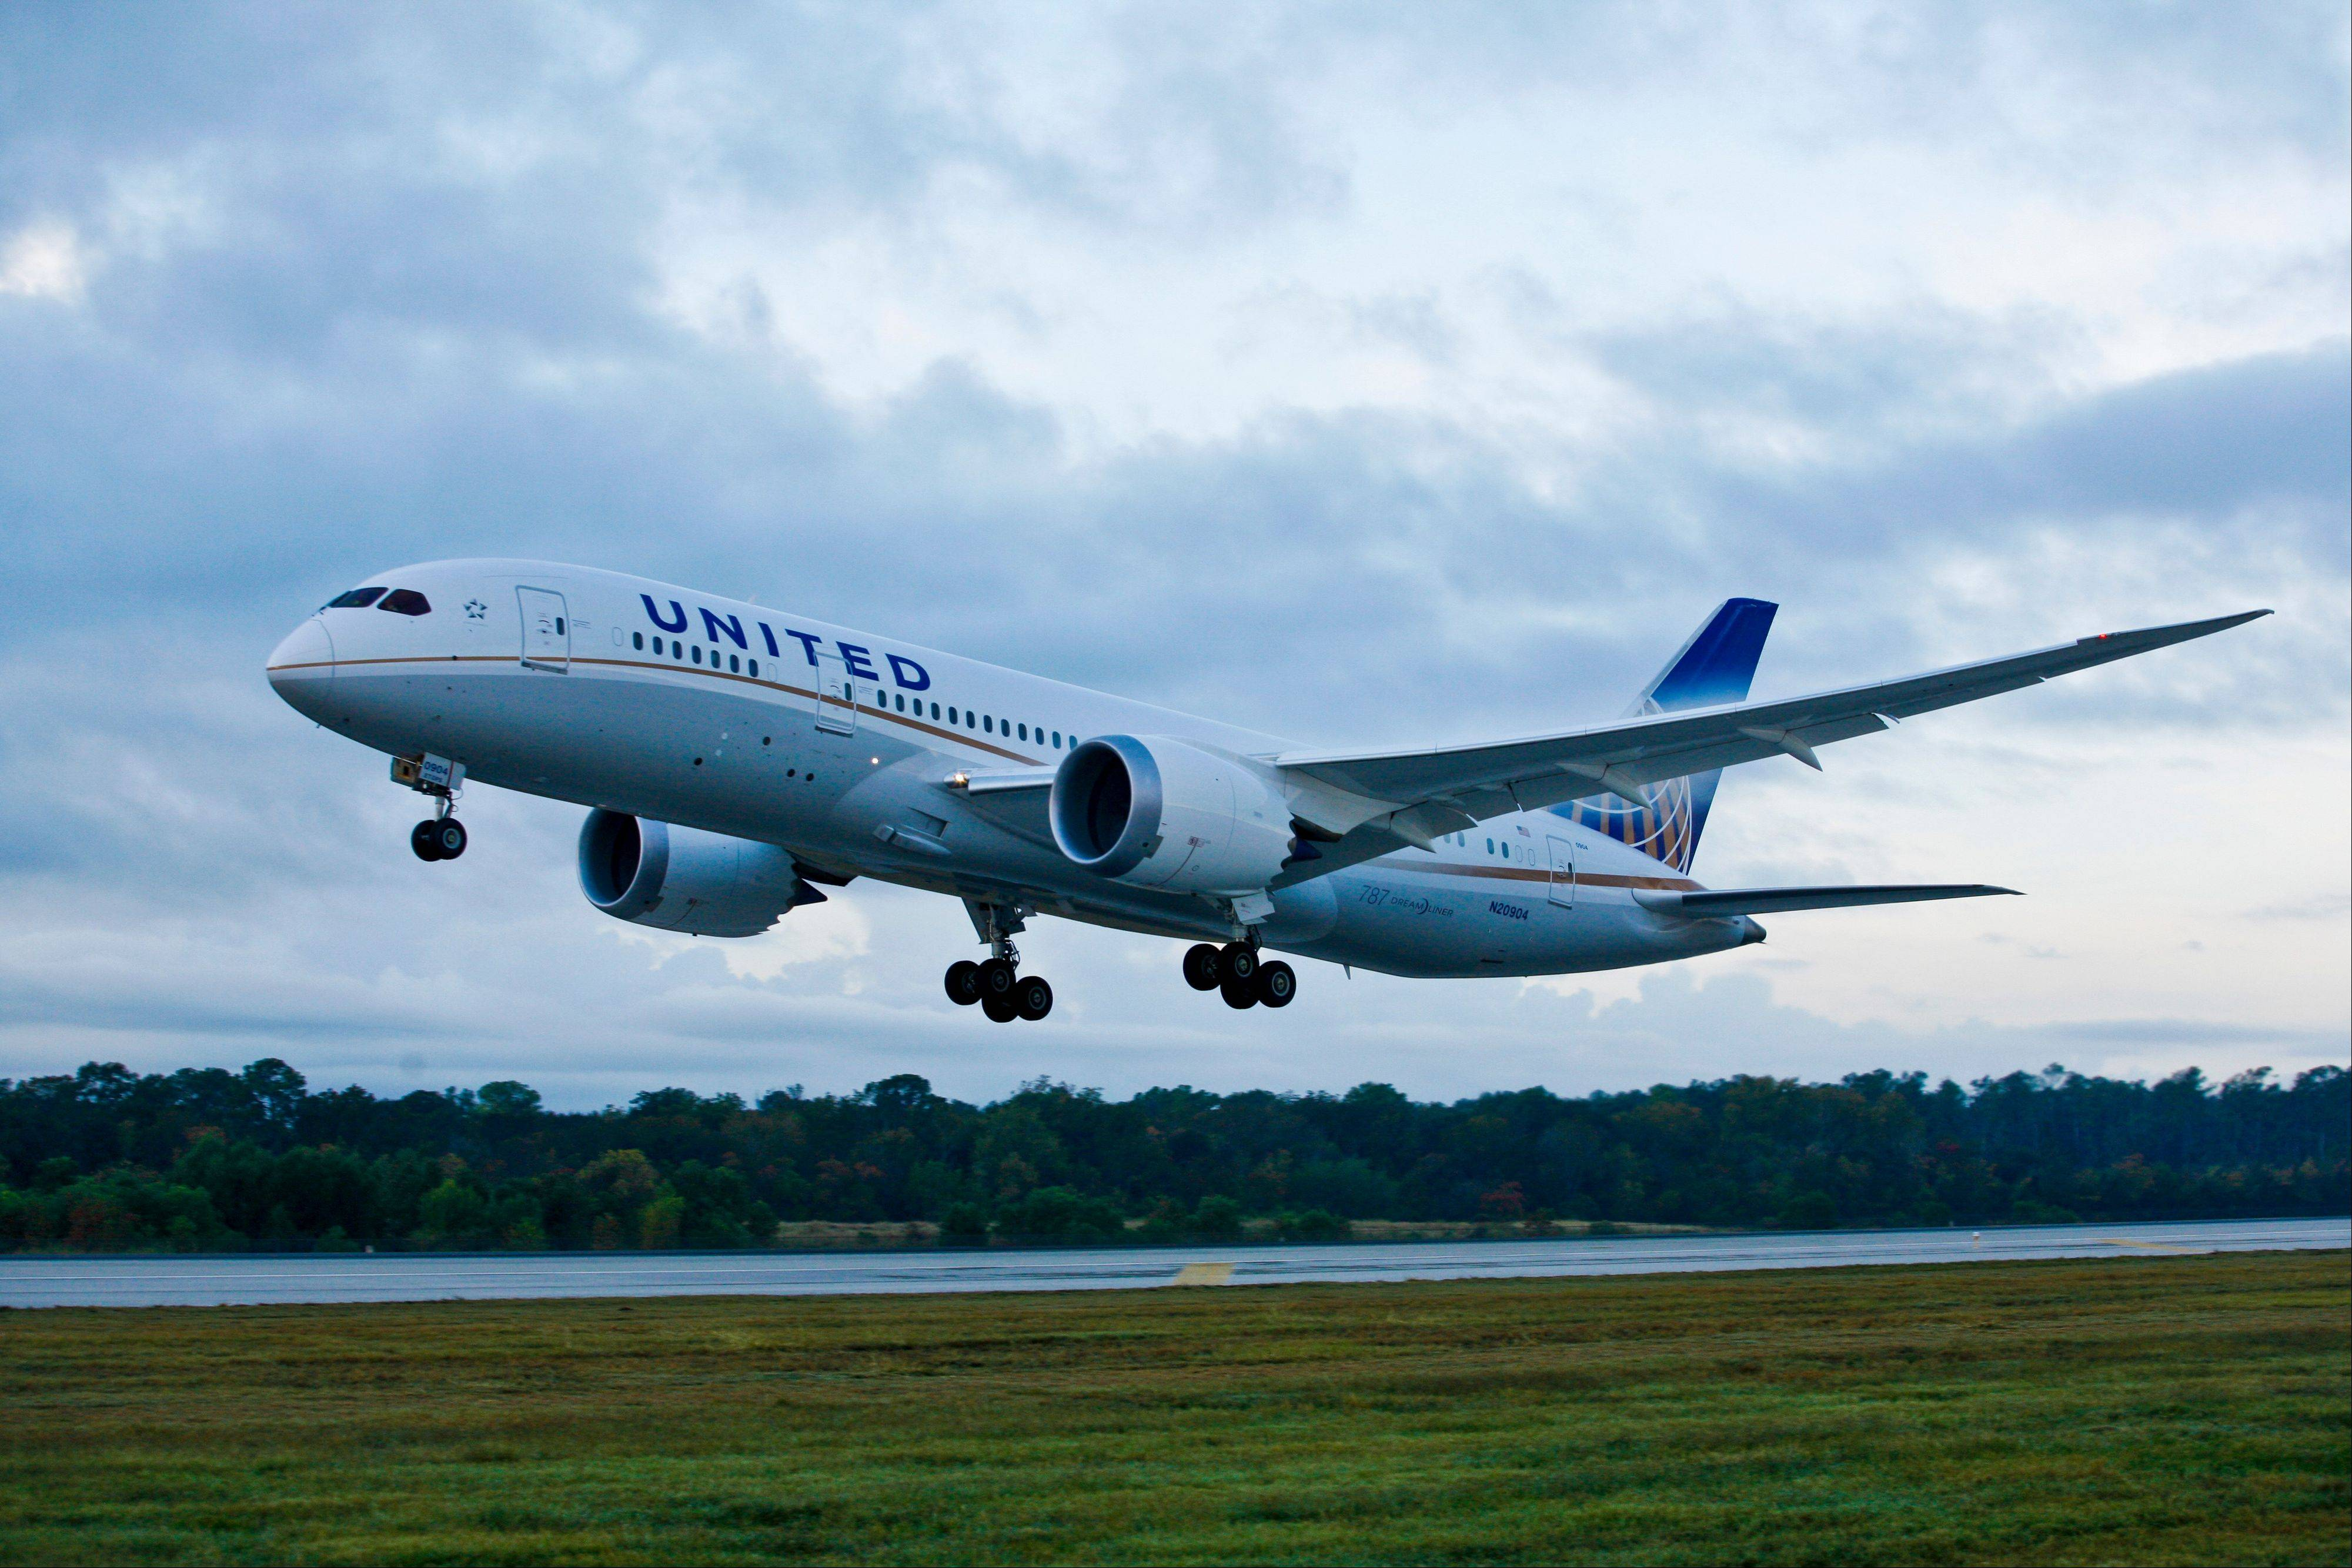 A United Airlines Boeing 787 takes off for its first scheduled commercial flight from Houston to Chicago, with more than 200 customers on board Nov. 4, 2012, in Houston at Bush International Airport.